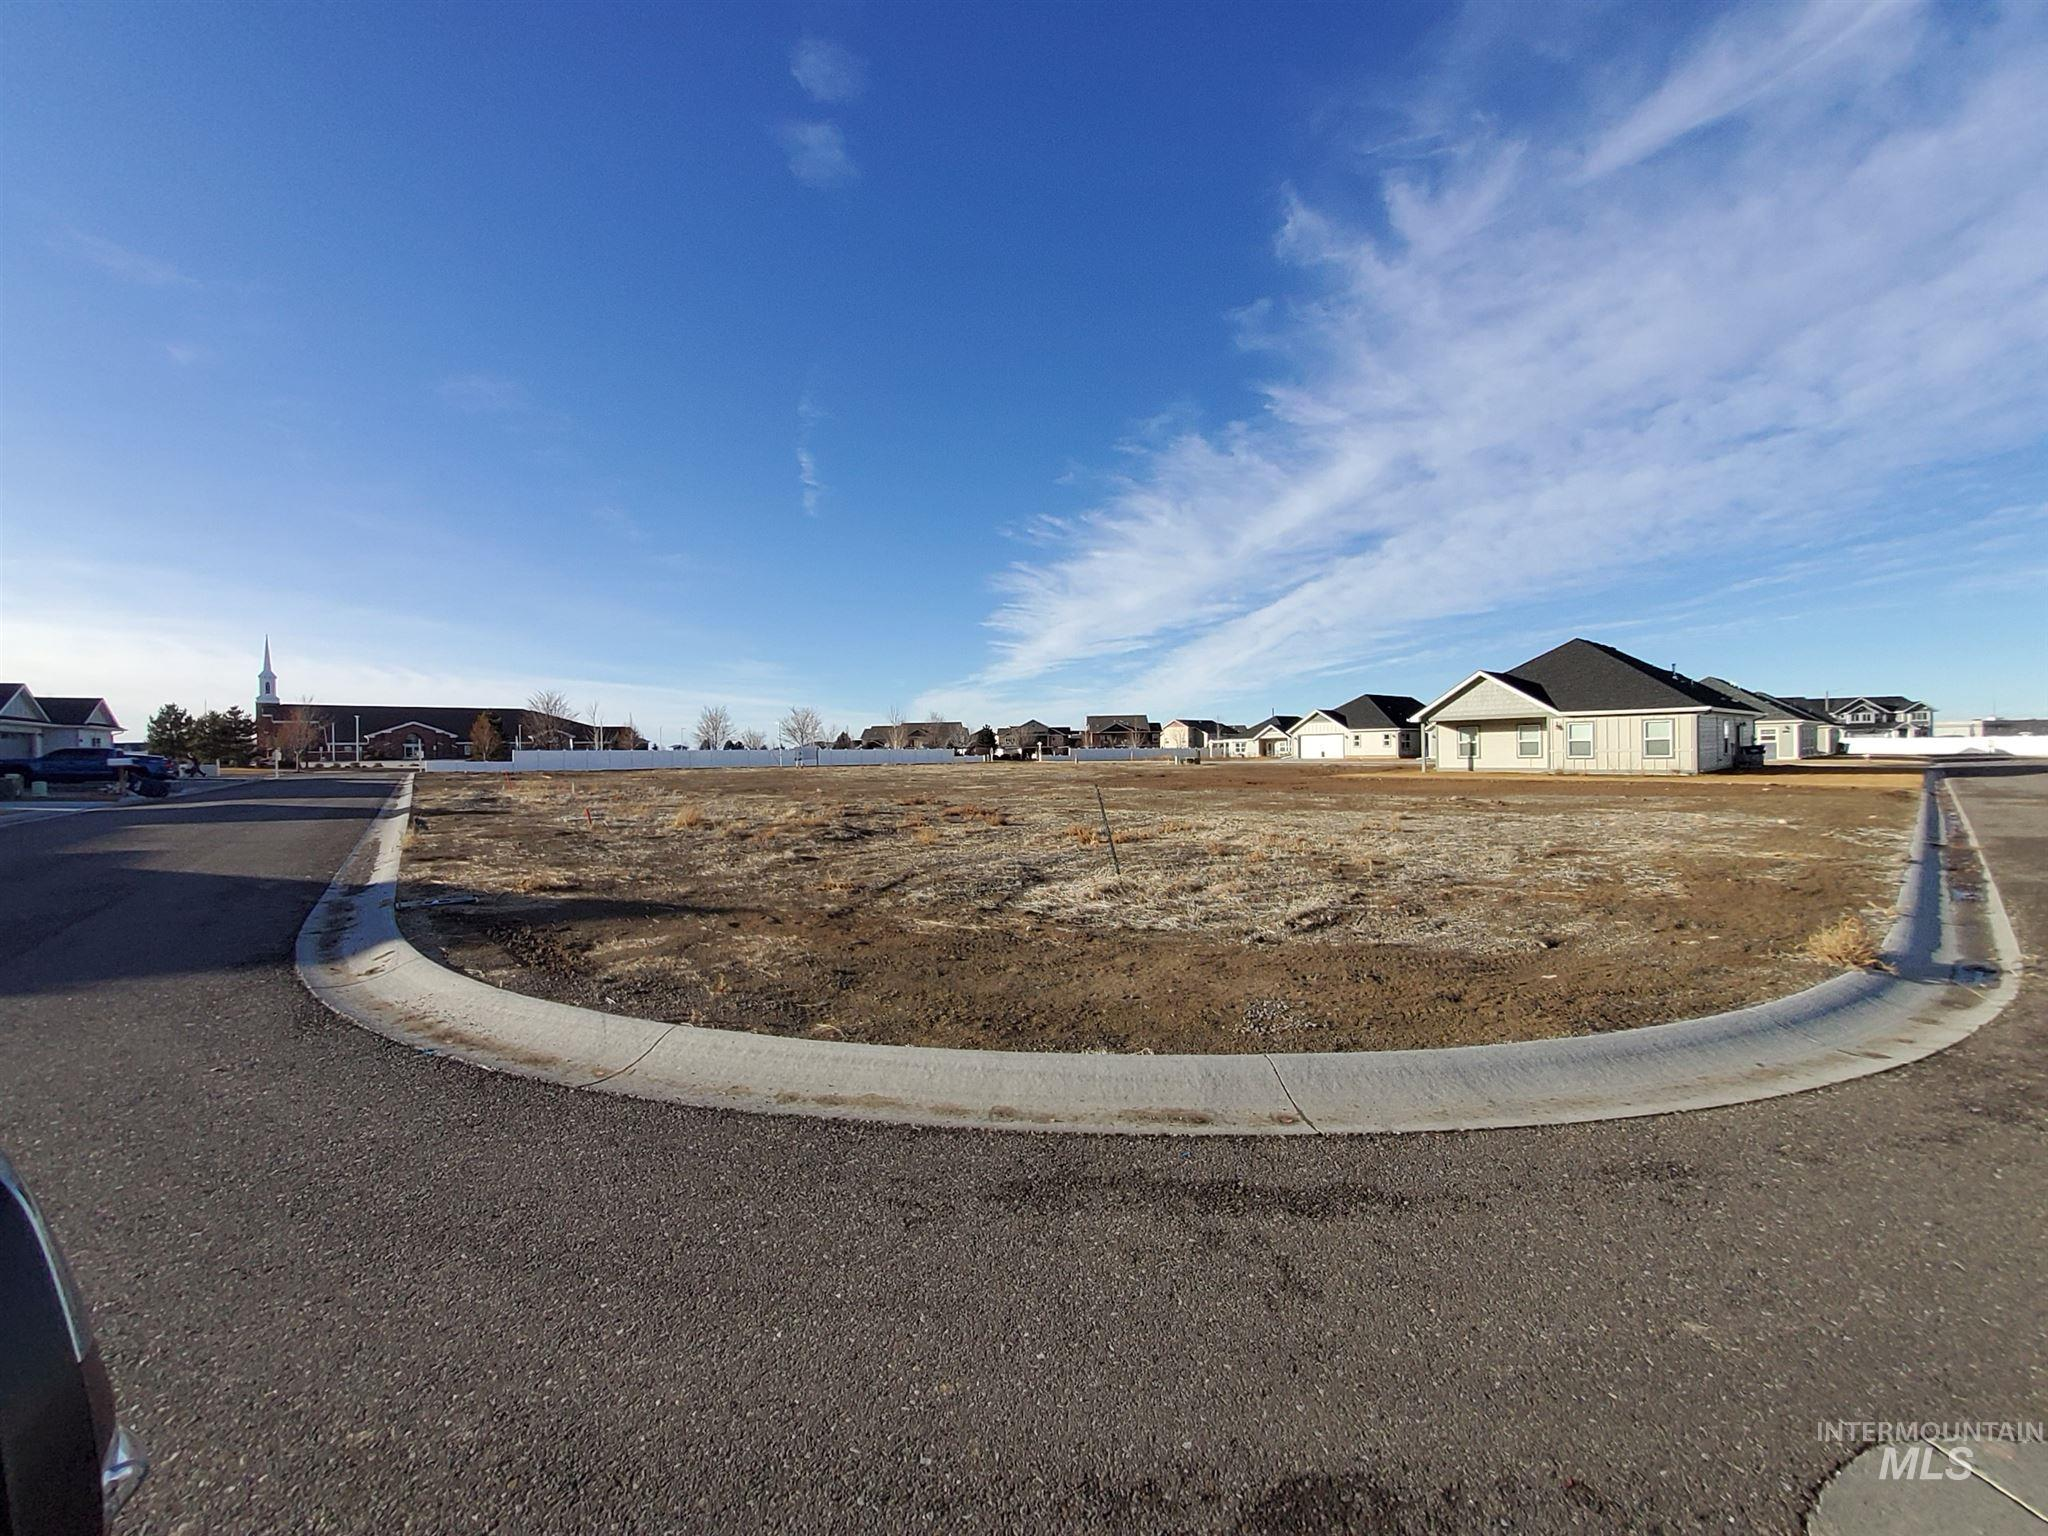 1091 Cottage Rd, Twin Falls, Idaho 83301, Land For Sale, Price $59,000, 98790764